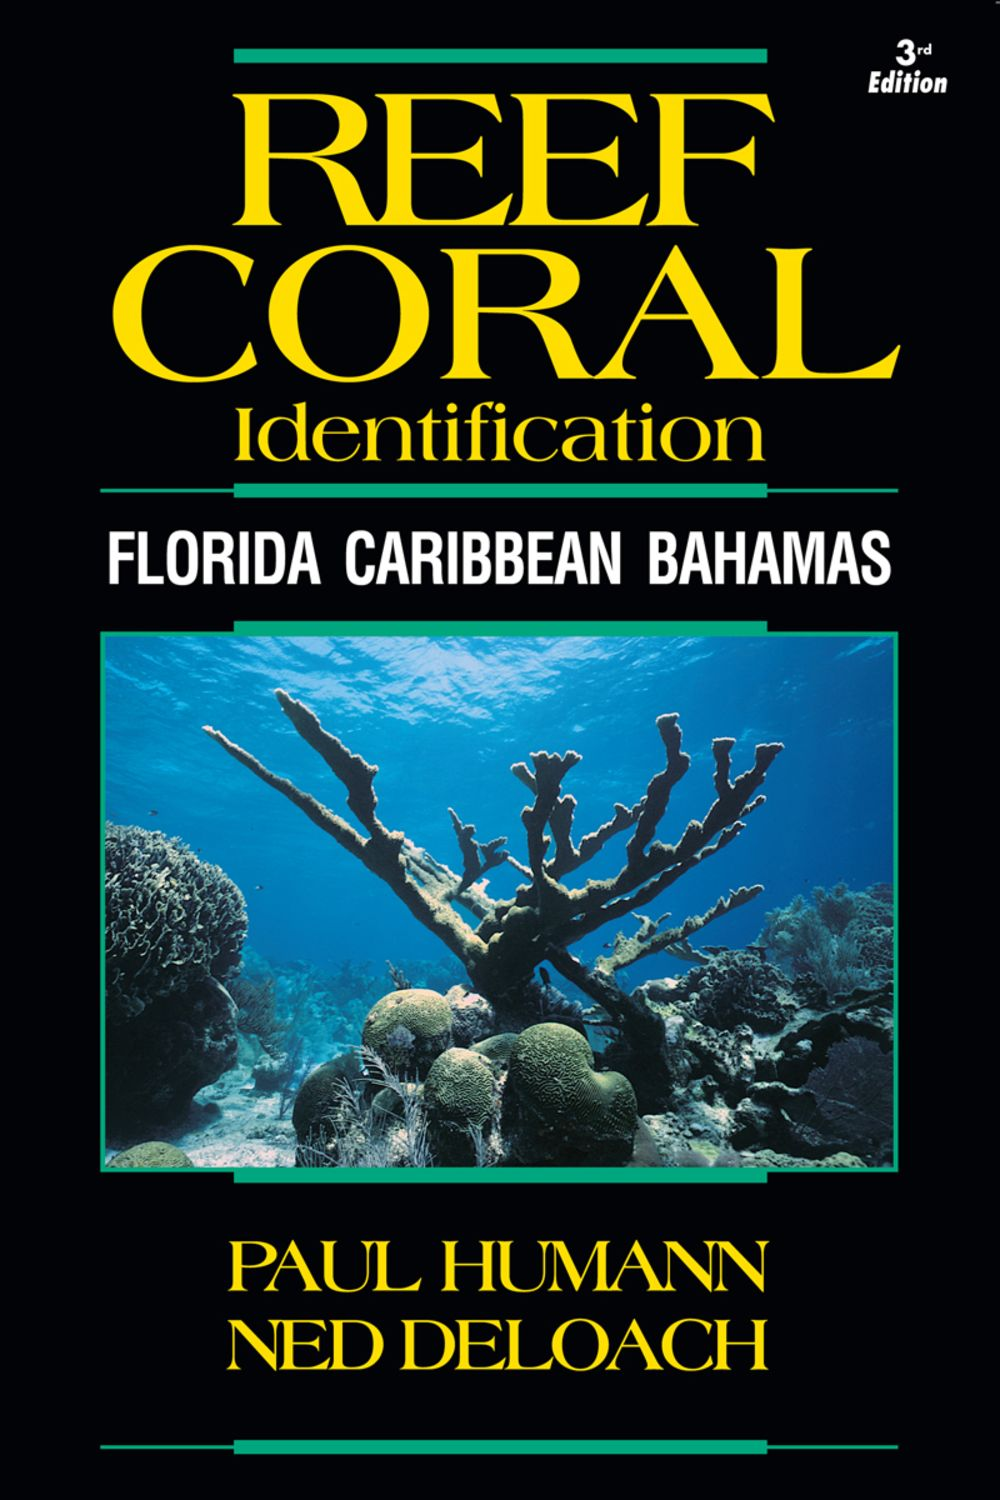 newest editions of reef coral and creature identification books